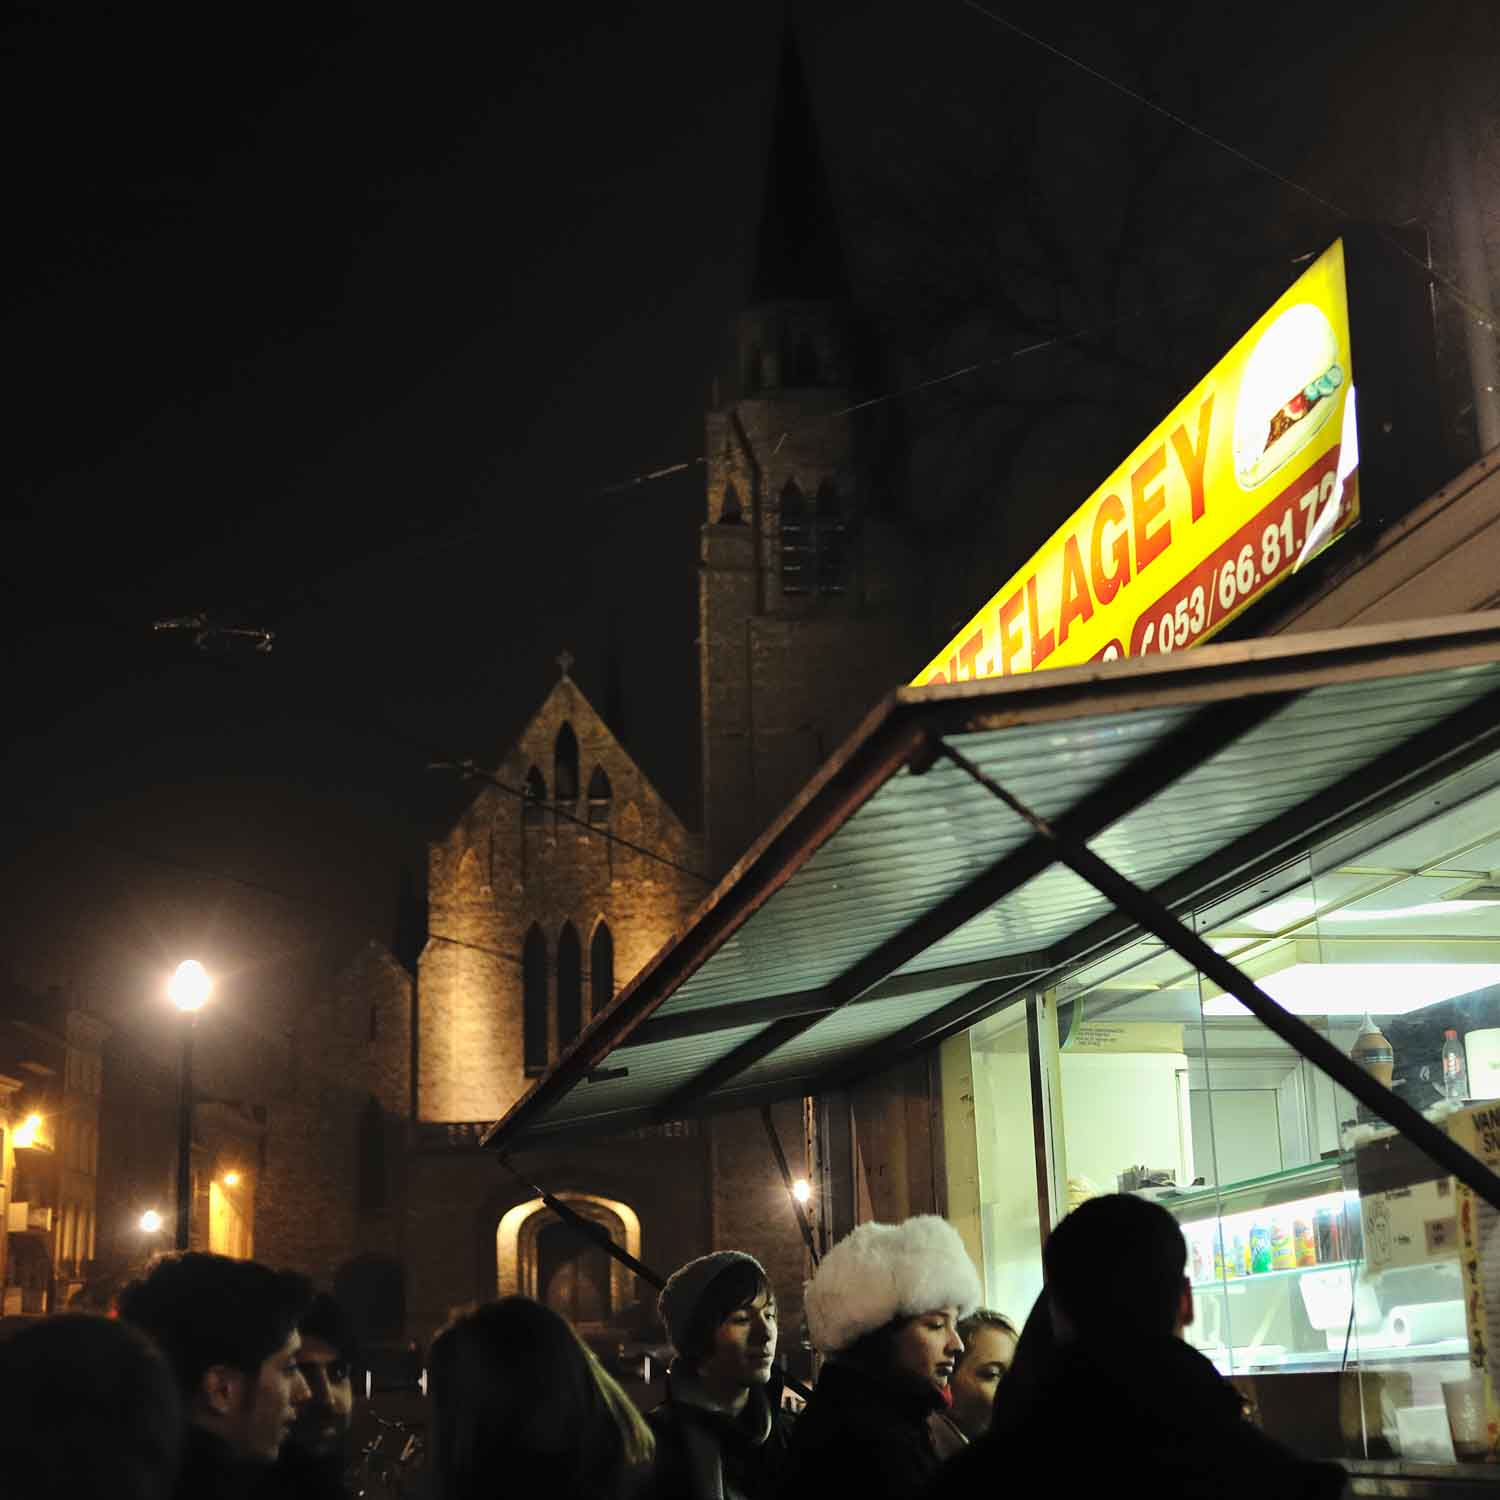 Frit Flagey's is popular for fries in Brussels.